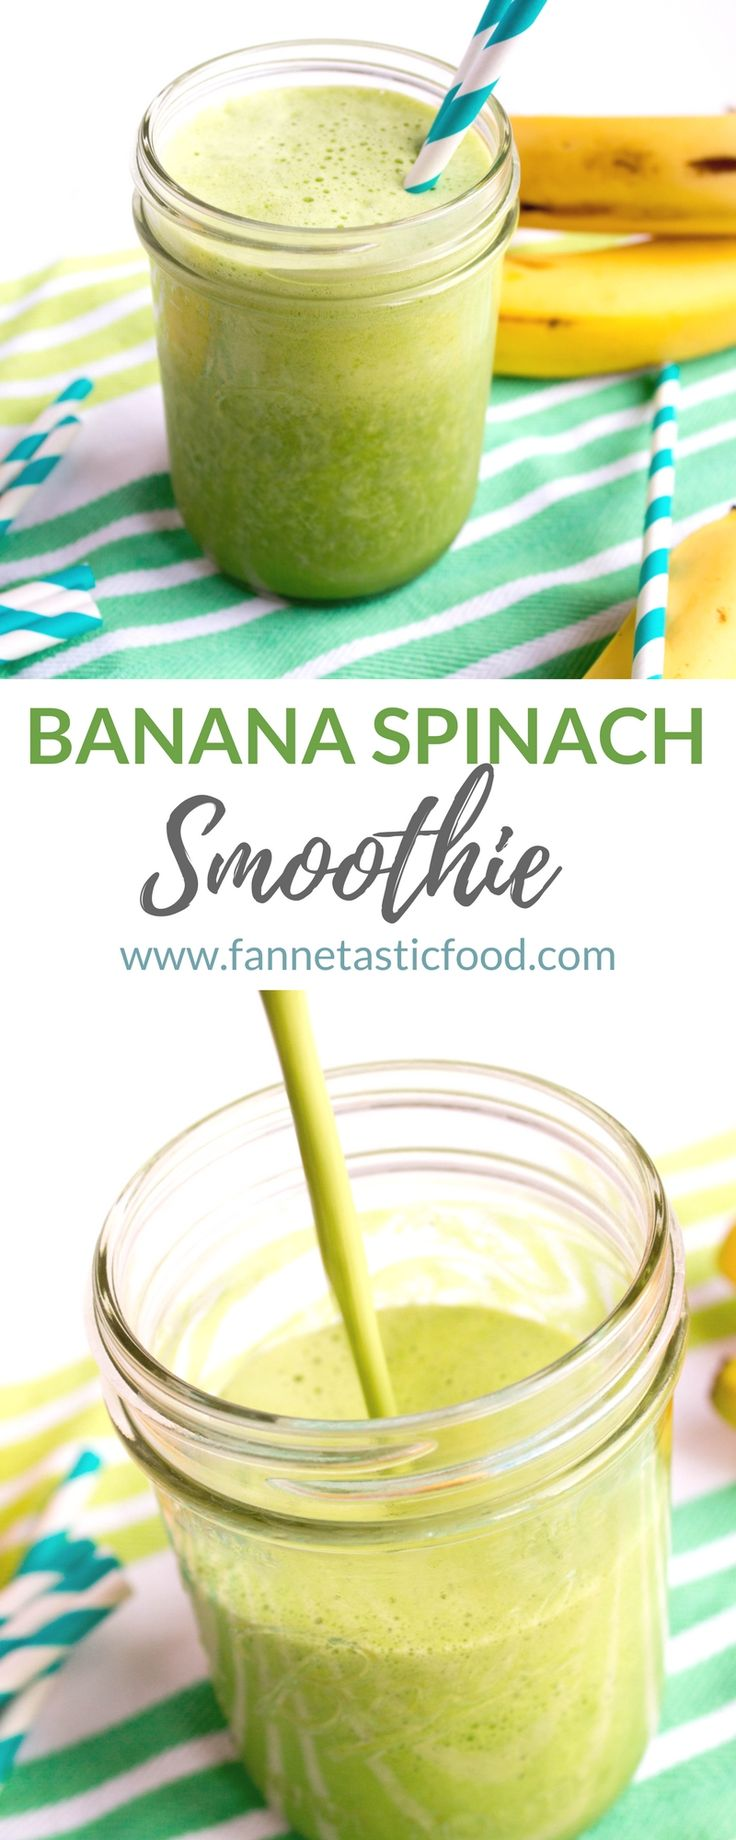 This Banana Spinach Smoothie is an easy classic green smoothie recipe to get you started on veggie filled smoothies! So simple, so delicious! | vegan smoothie recipes | healthy smoothie recipes | green smoothie recipes |